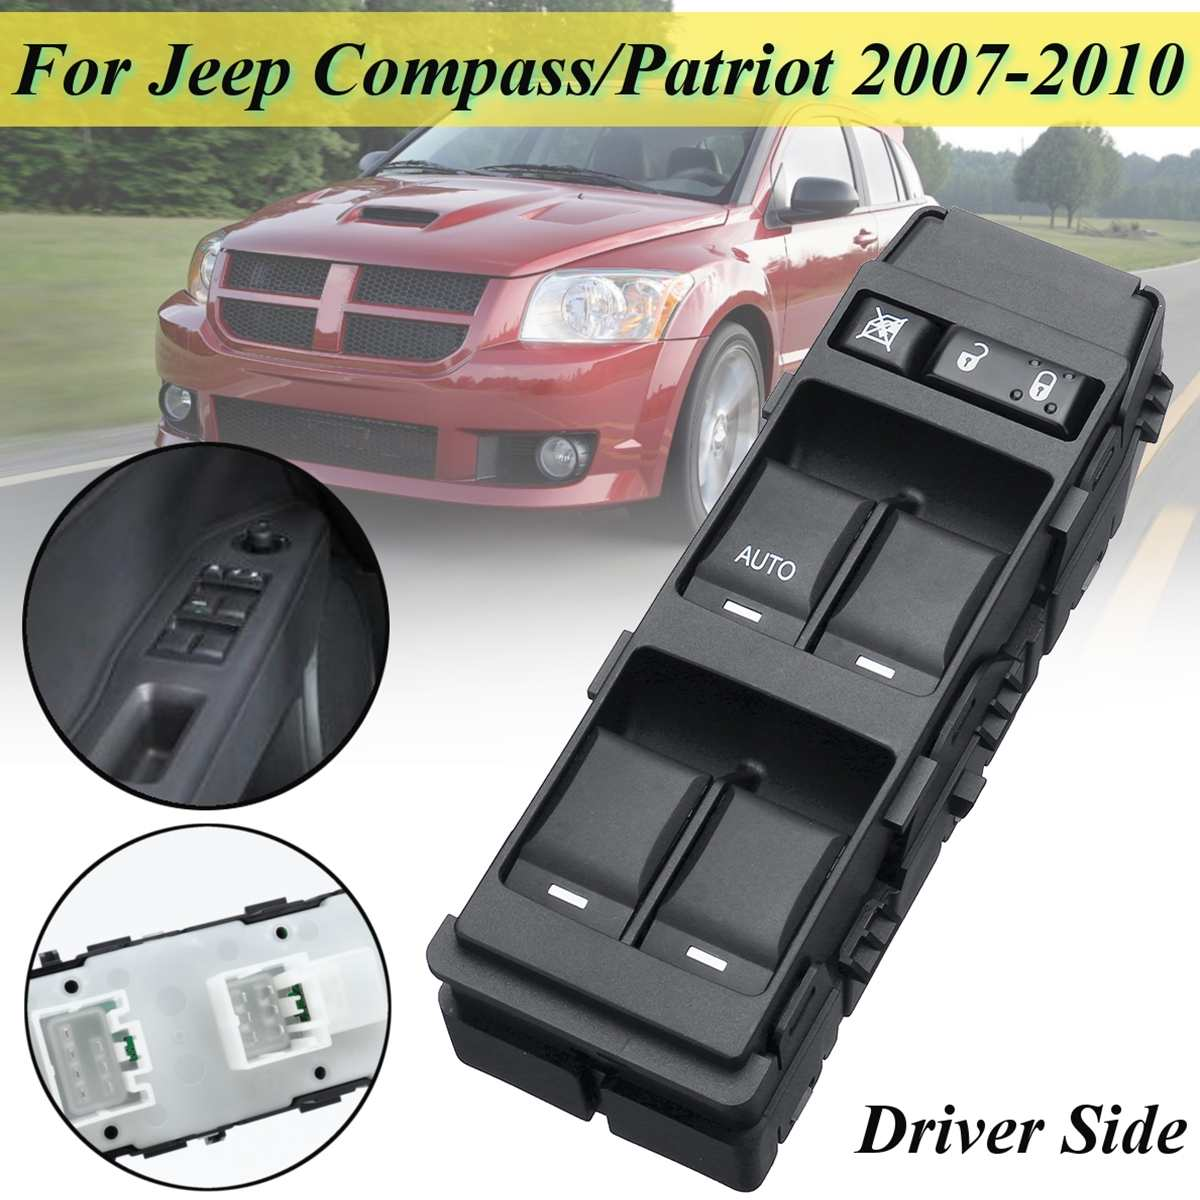 56040691AD Front Left LHD Window Switch Replacement For Dodge Caliber For Jeep For Compass Patriot 2007 2008 2009-10 56040691AB